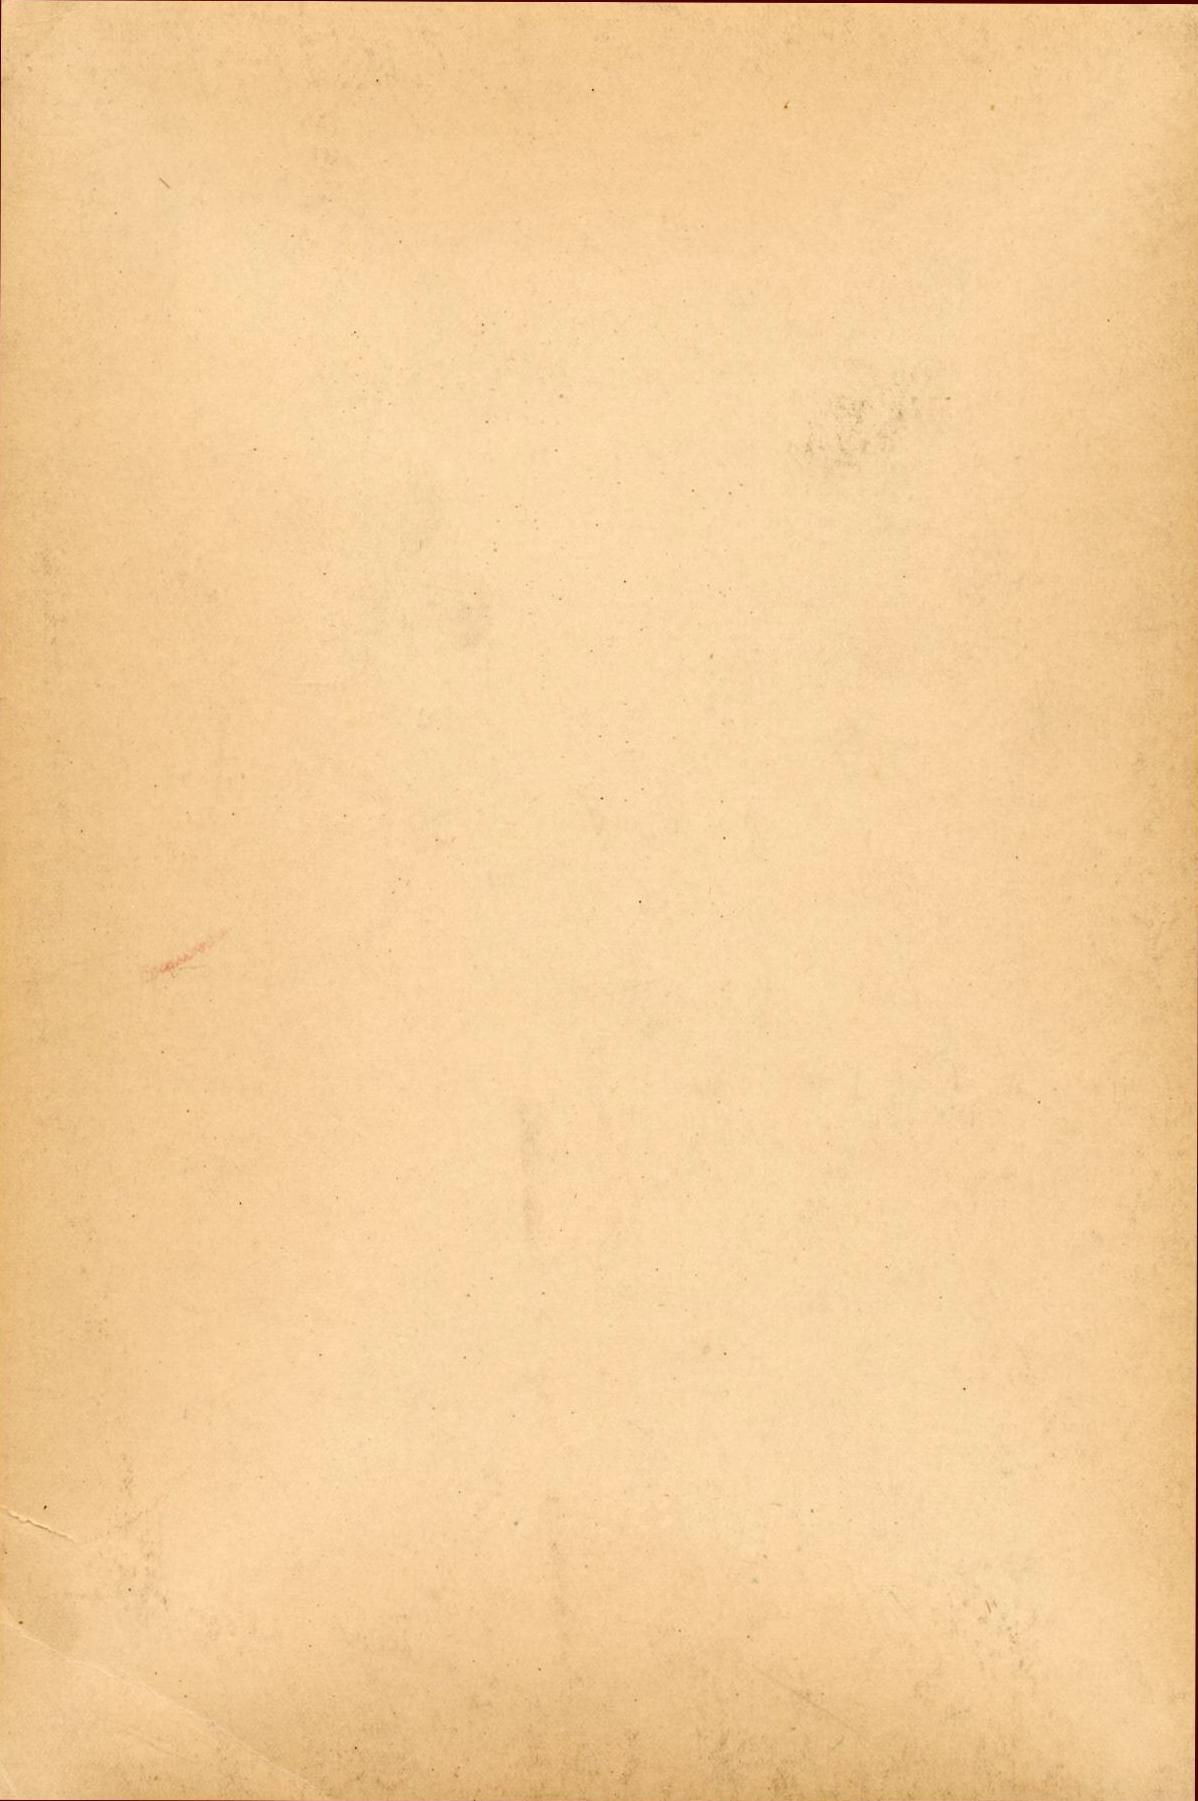 Old Paper Background - Google Search